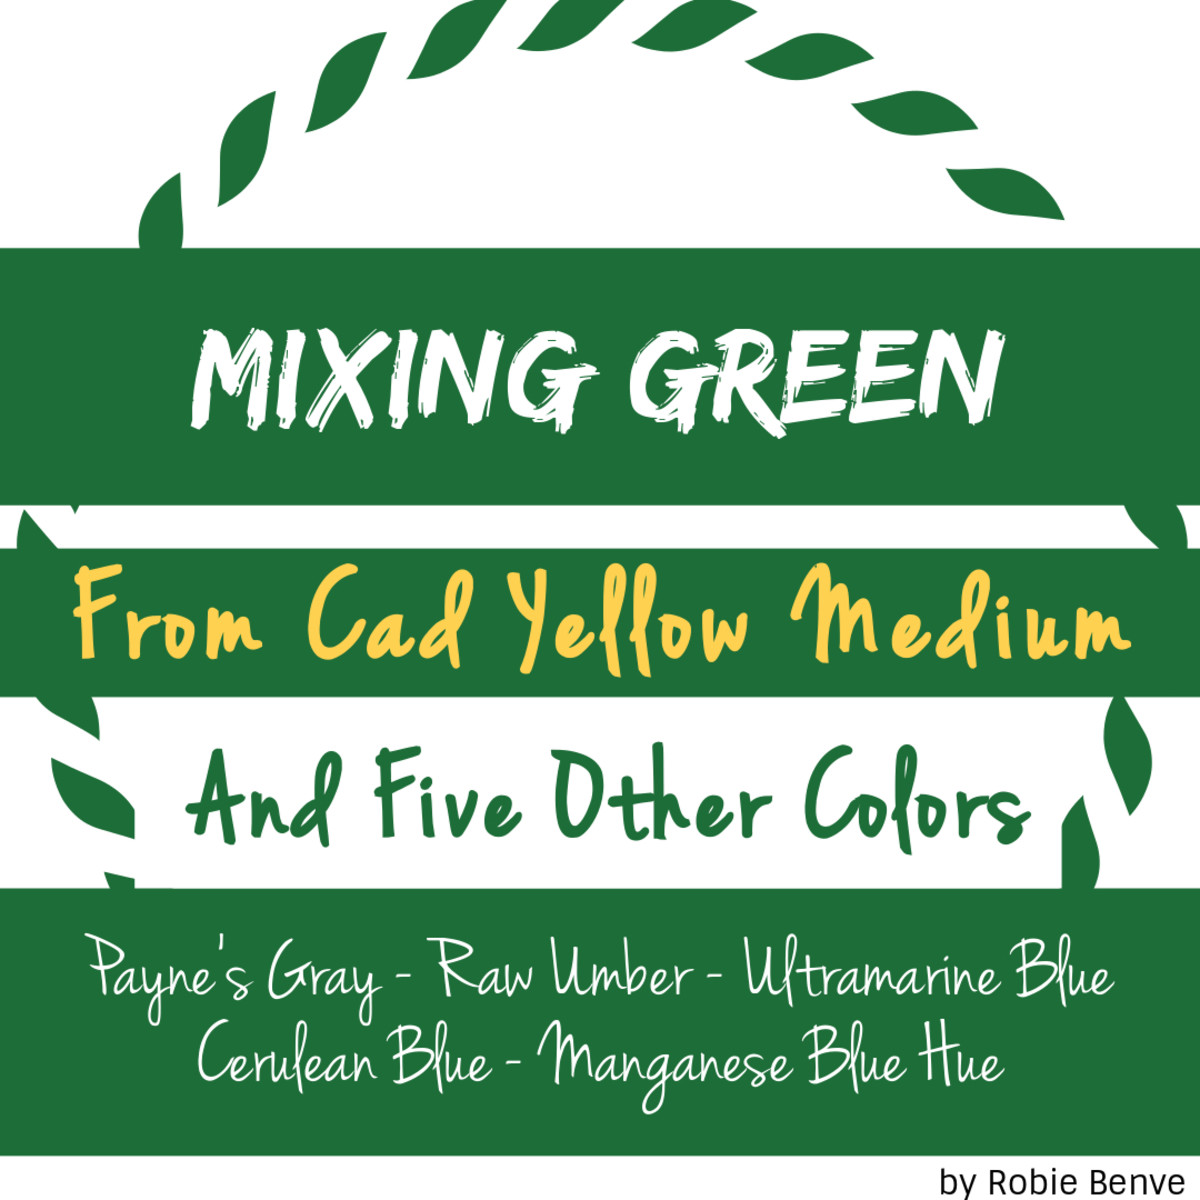 Five examples of how to mix green from Cad Yellow Medium Pure combined with Payne's Gray, Raw Umber, Ultramarine Blue, Cerulean Blue, and Manganese Blue Hue.